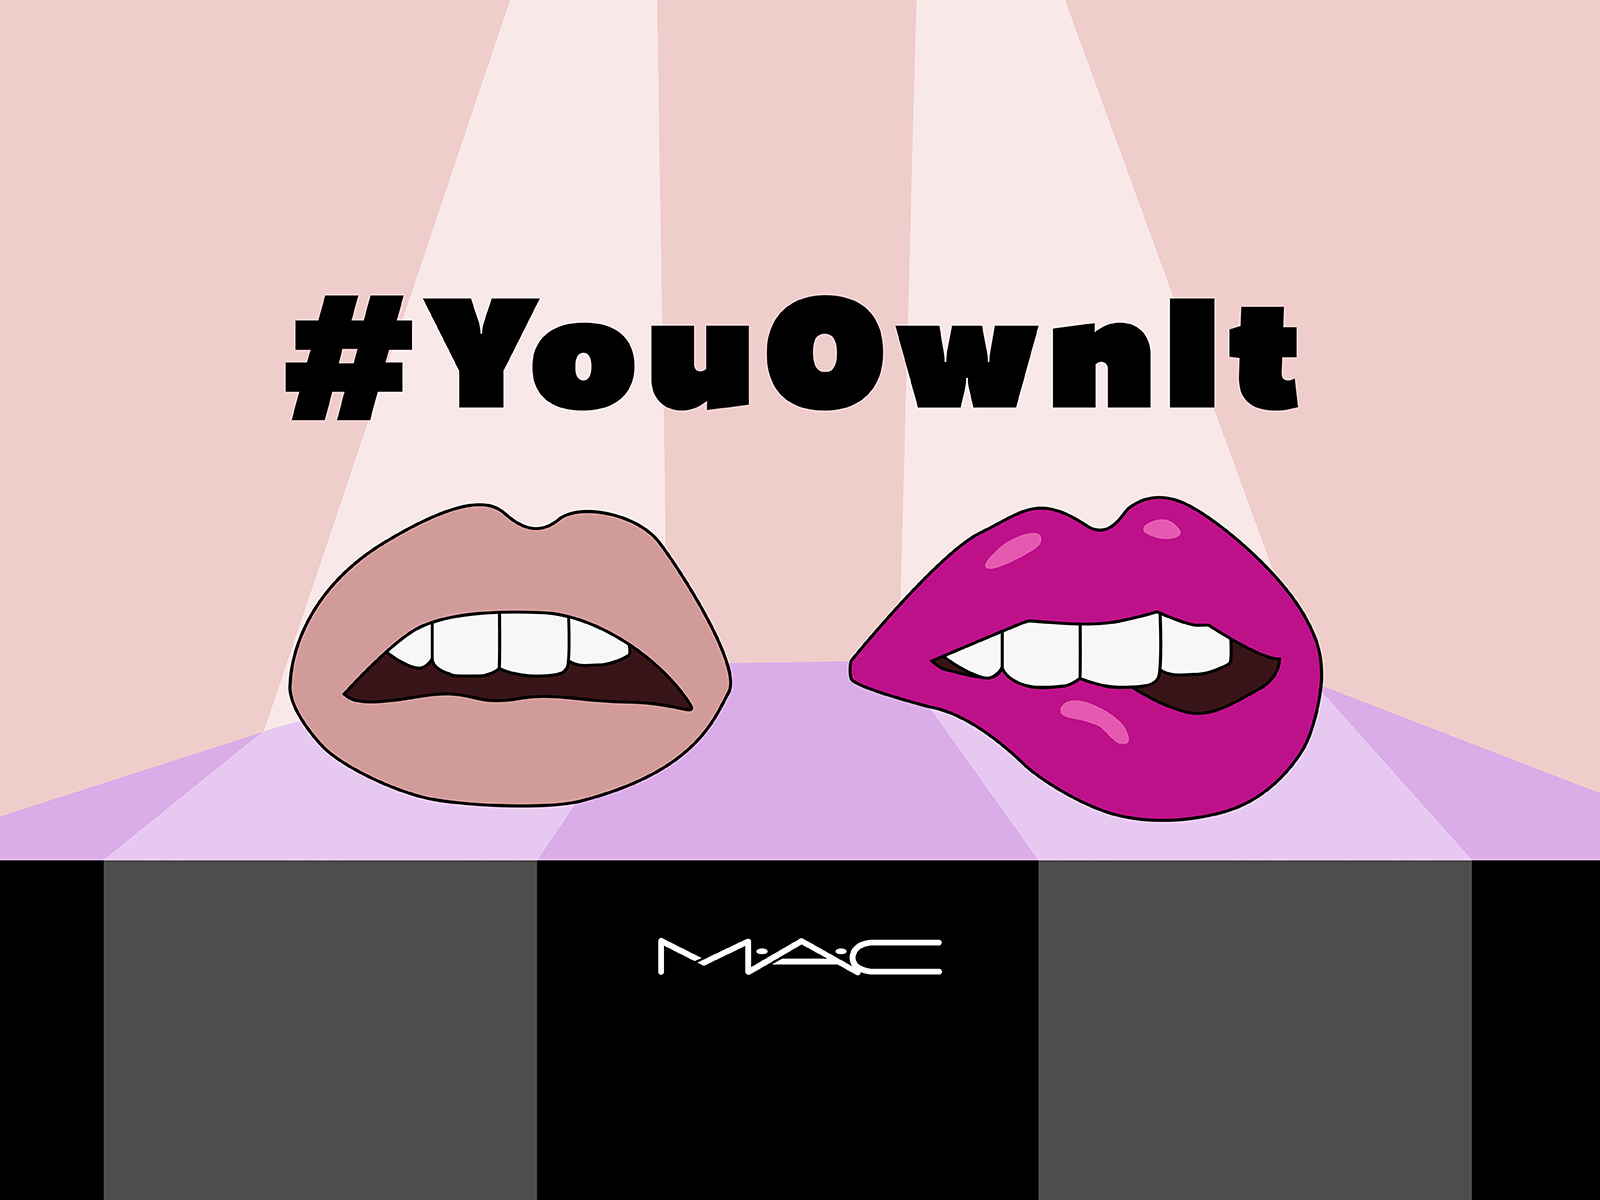 MAC Cosmetics | #YouOwnIt | TikTok | Pulse Advertising